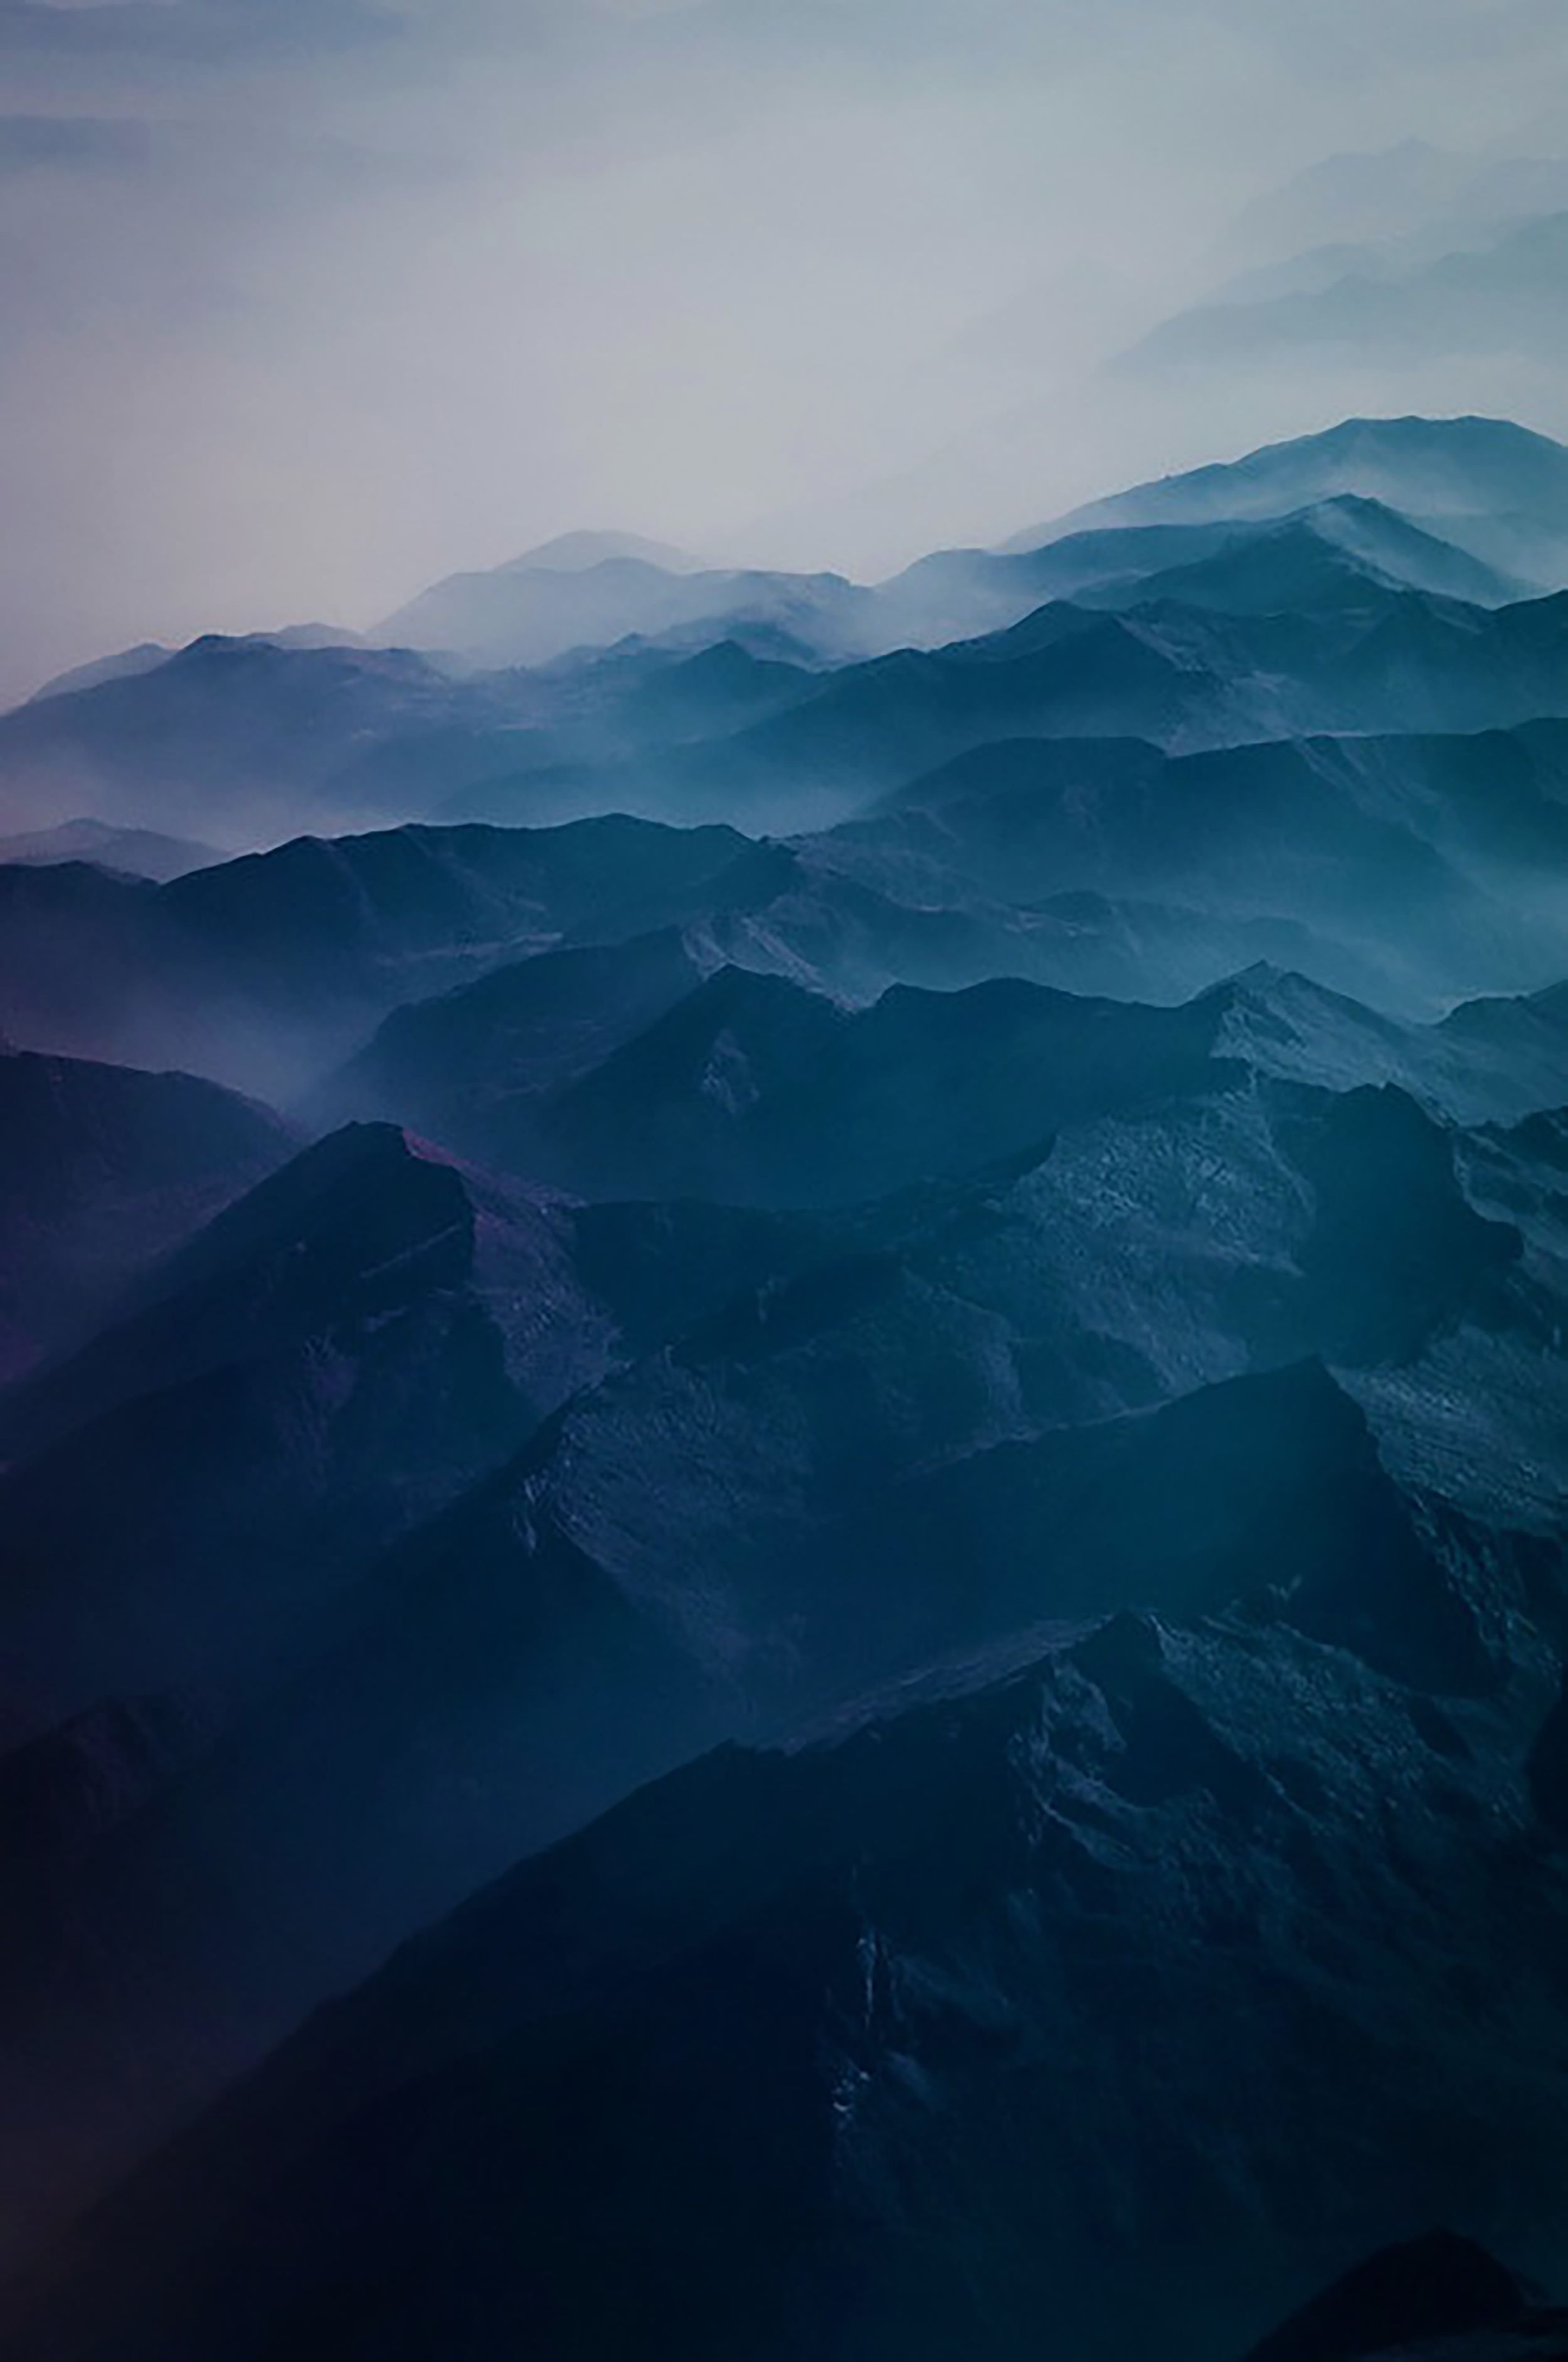 Pin By Bianca On Blue Nature Photography Landscape Photography Beautiful Nature